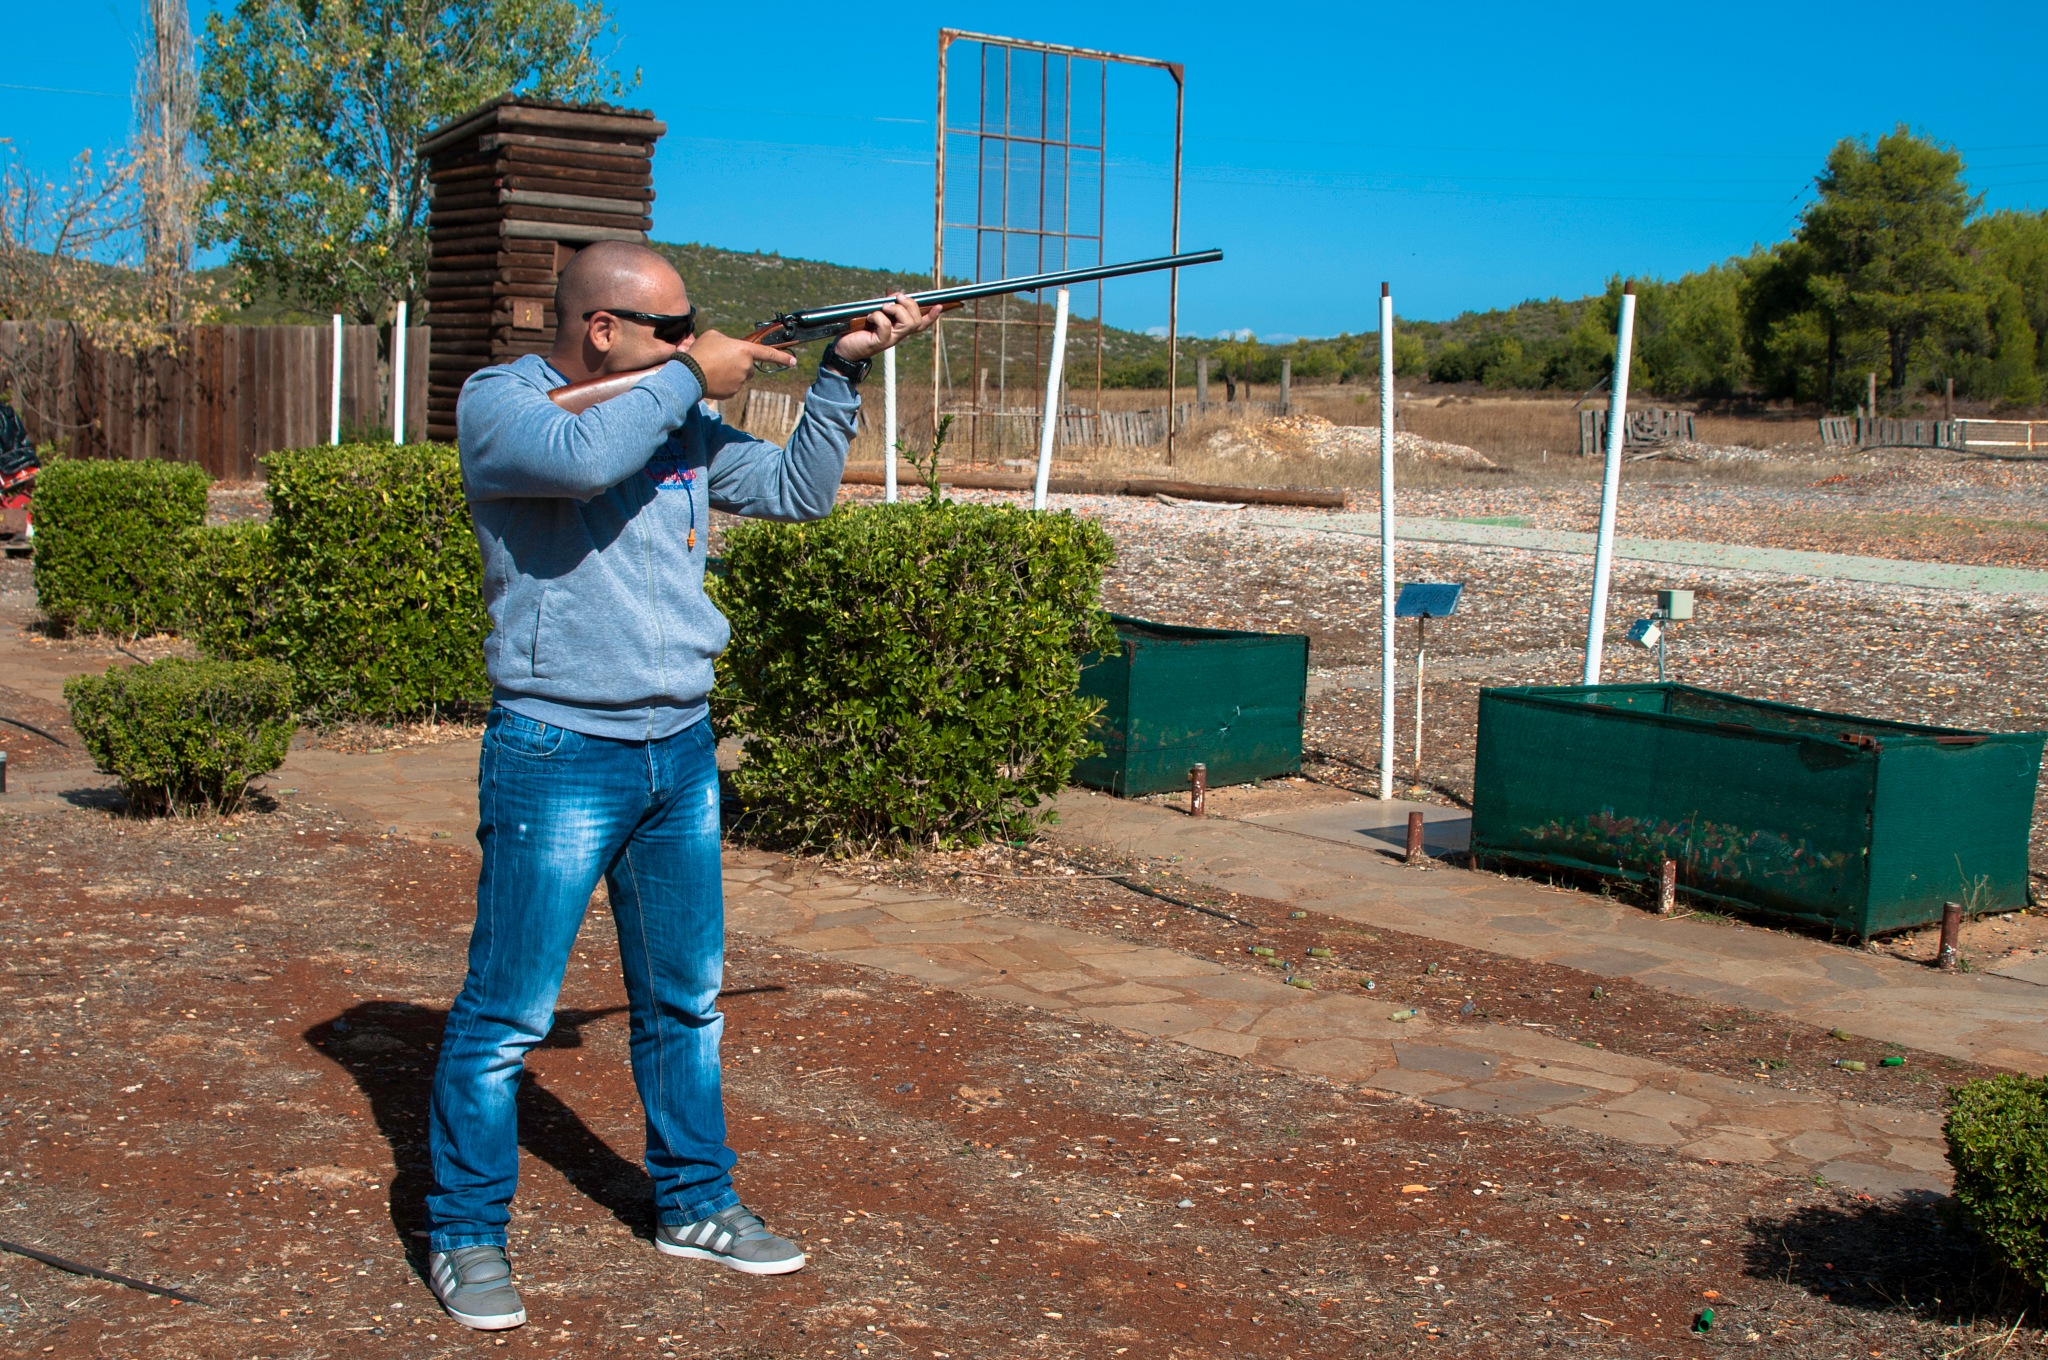 A day at the shooting range#9 by stratos